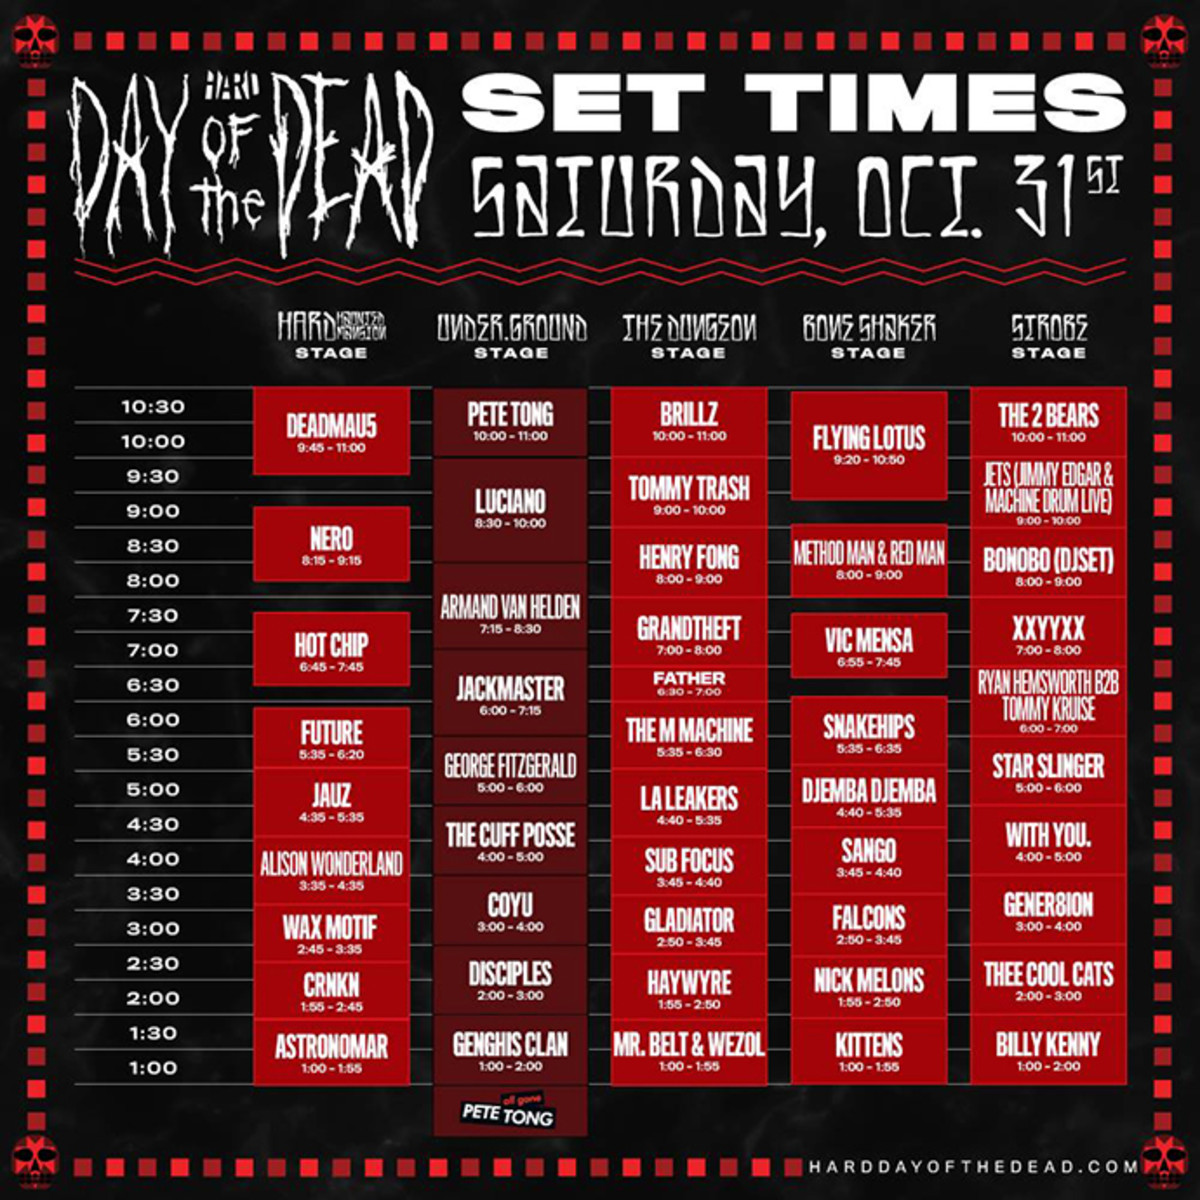 Hard Day of The Dead Set Times